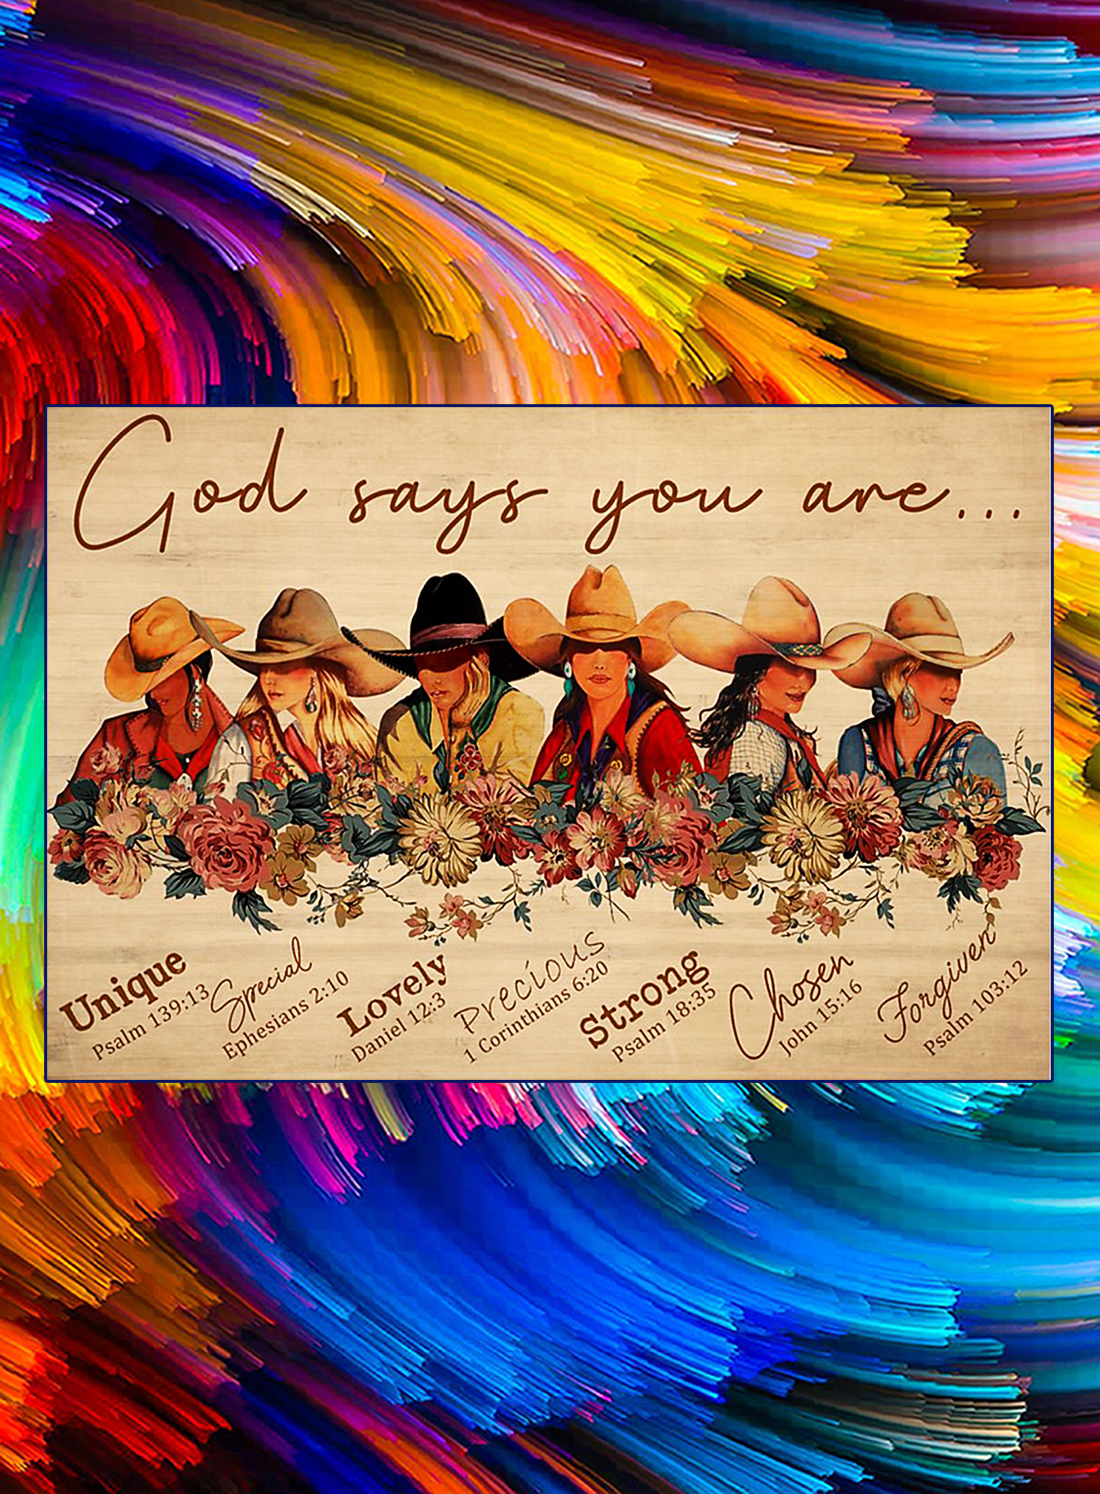 Cowgirl God says you are poster - A4